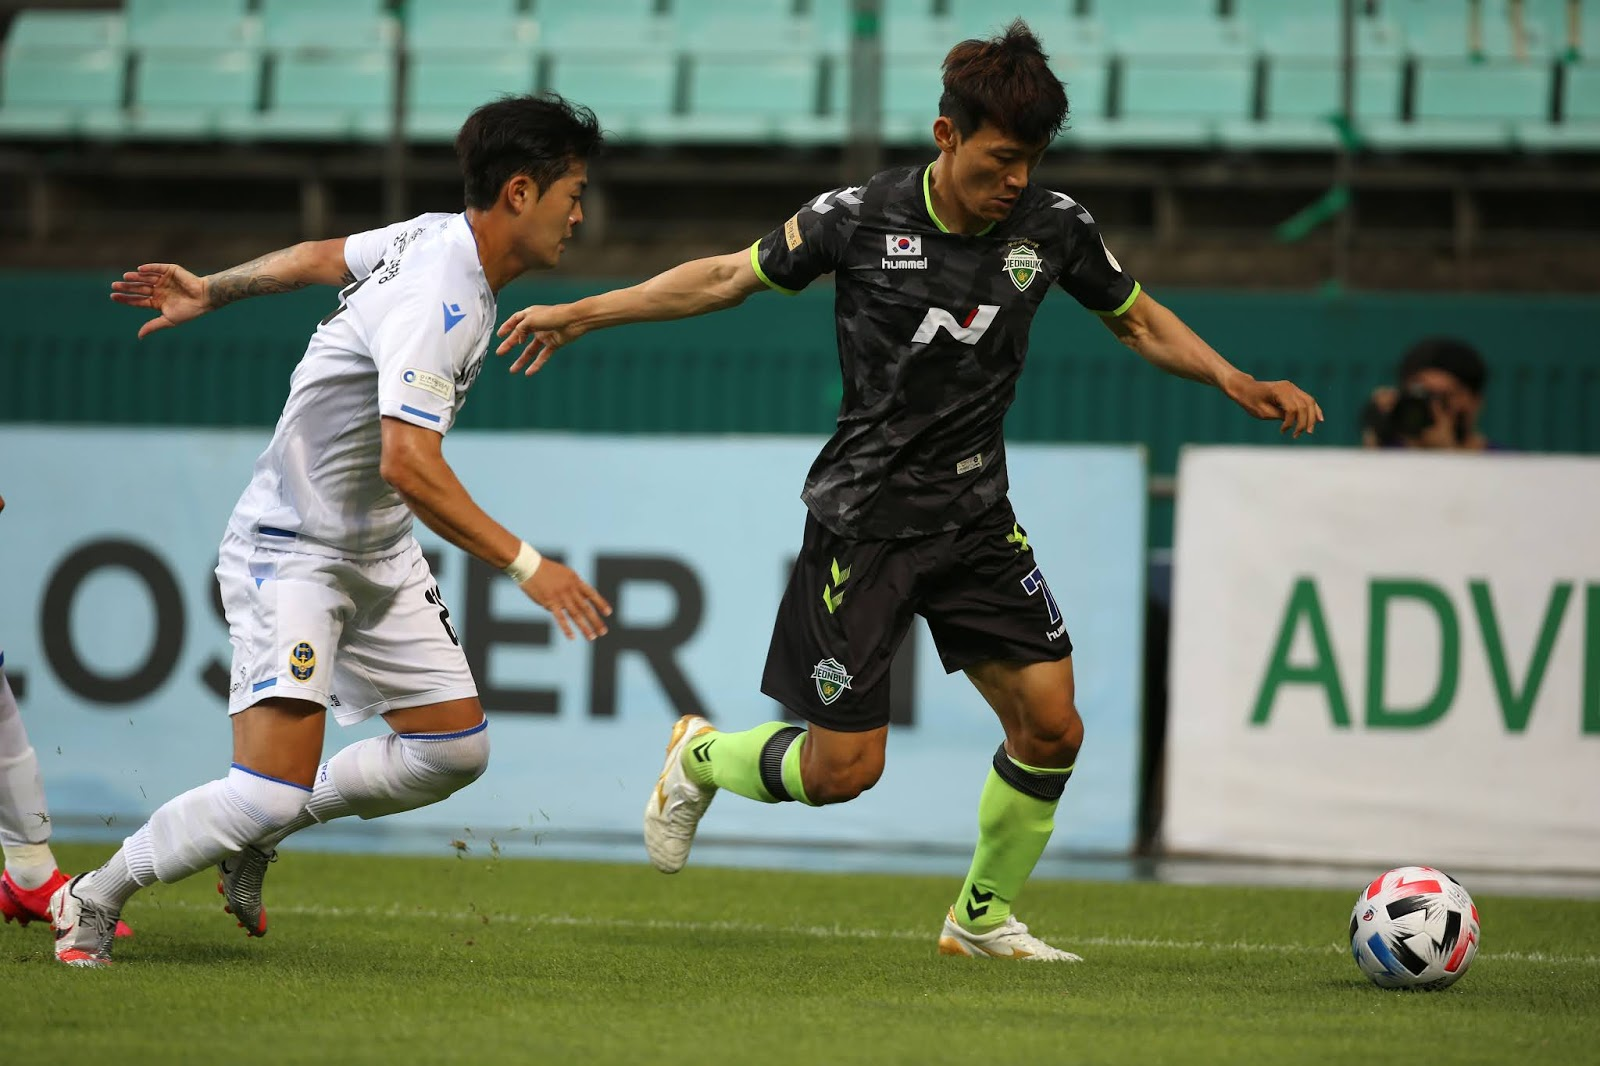 K League 1 Preview: Jeonbuk Hyundai Motors vs Gwangju FC